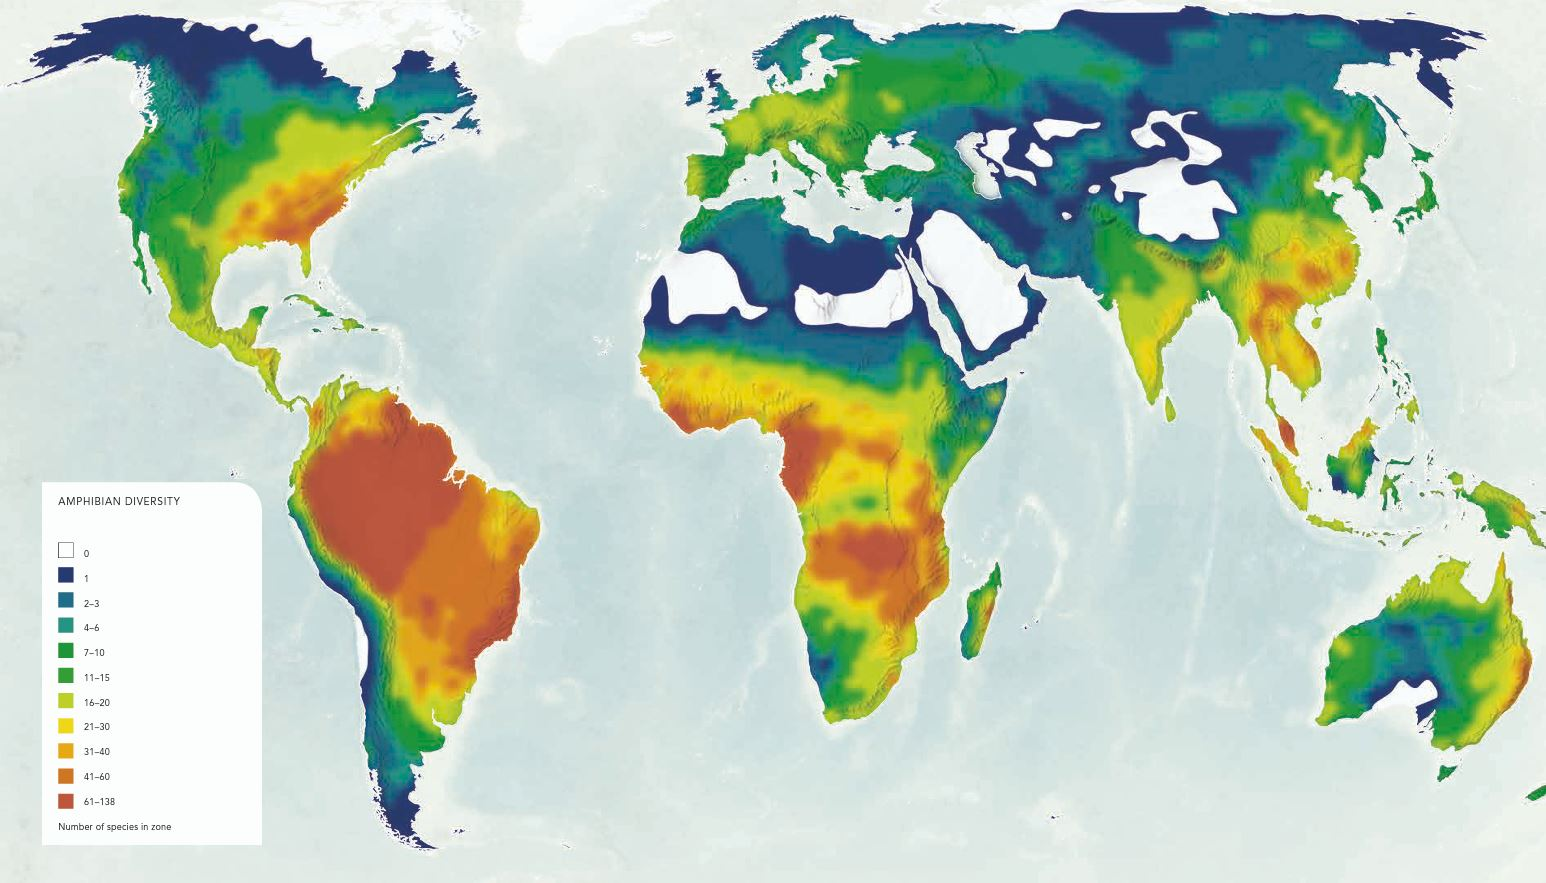 Amphibian Diversity World Map